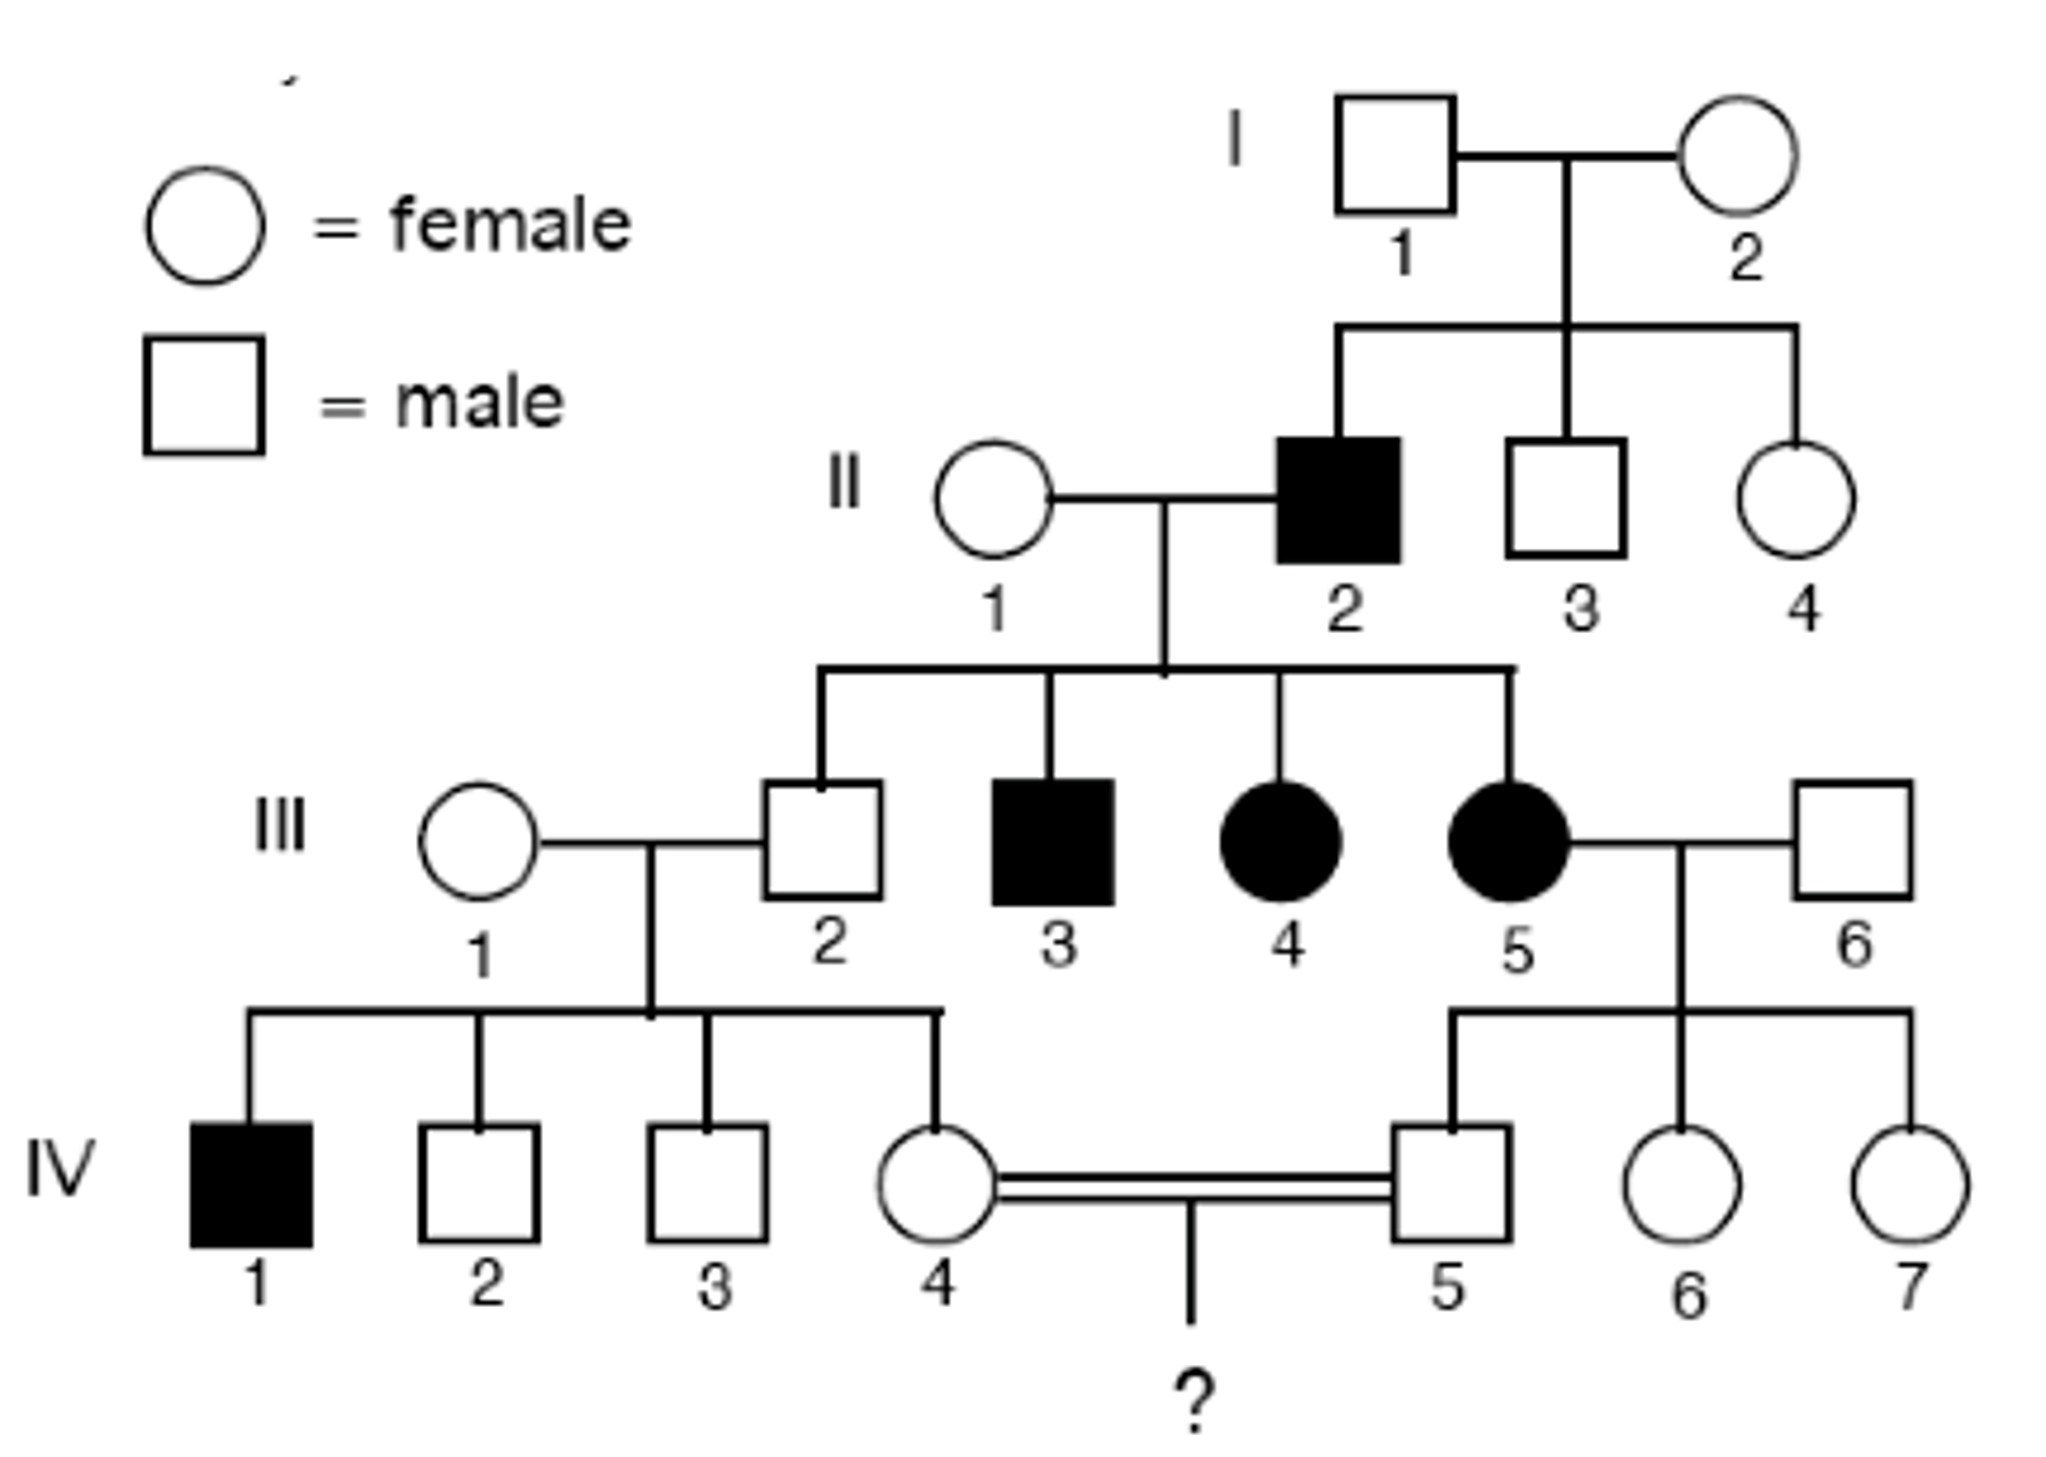 Solved For Each Pedigree Below Determine The Most Likely